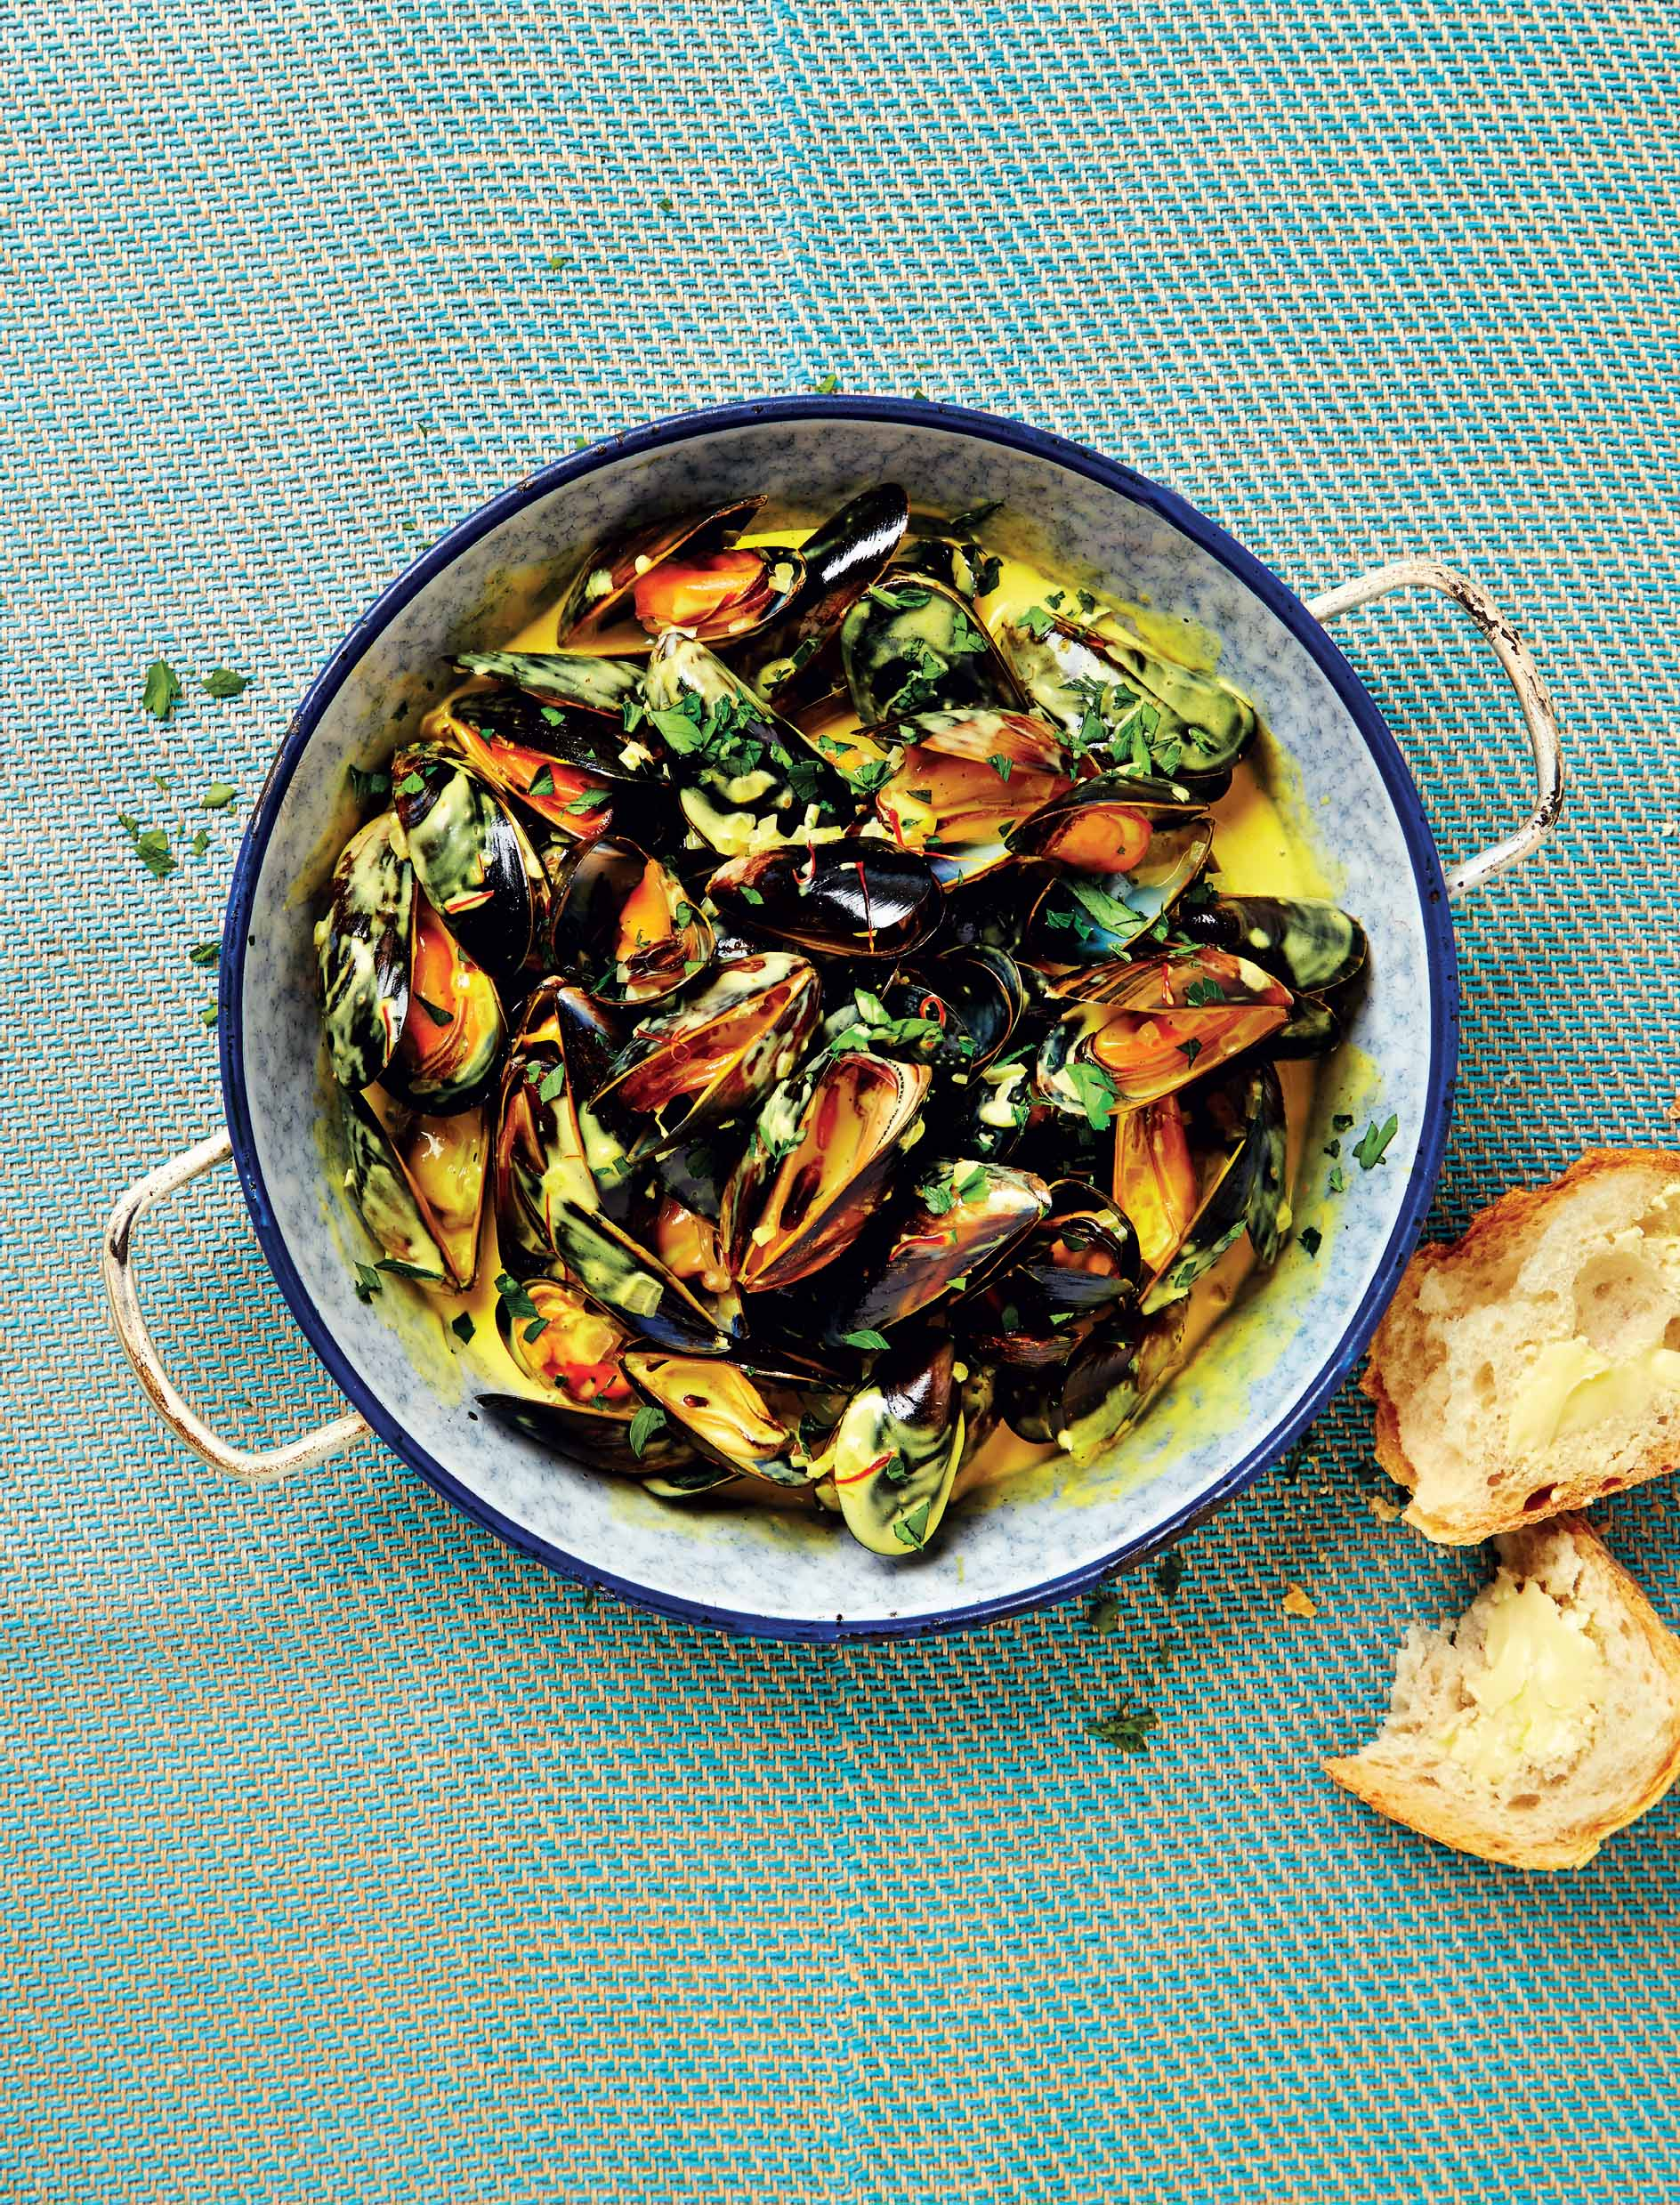 Mussels with saffron custard